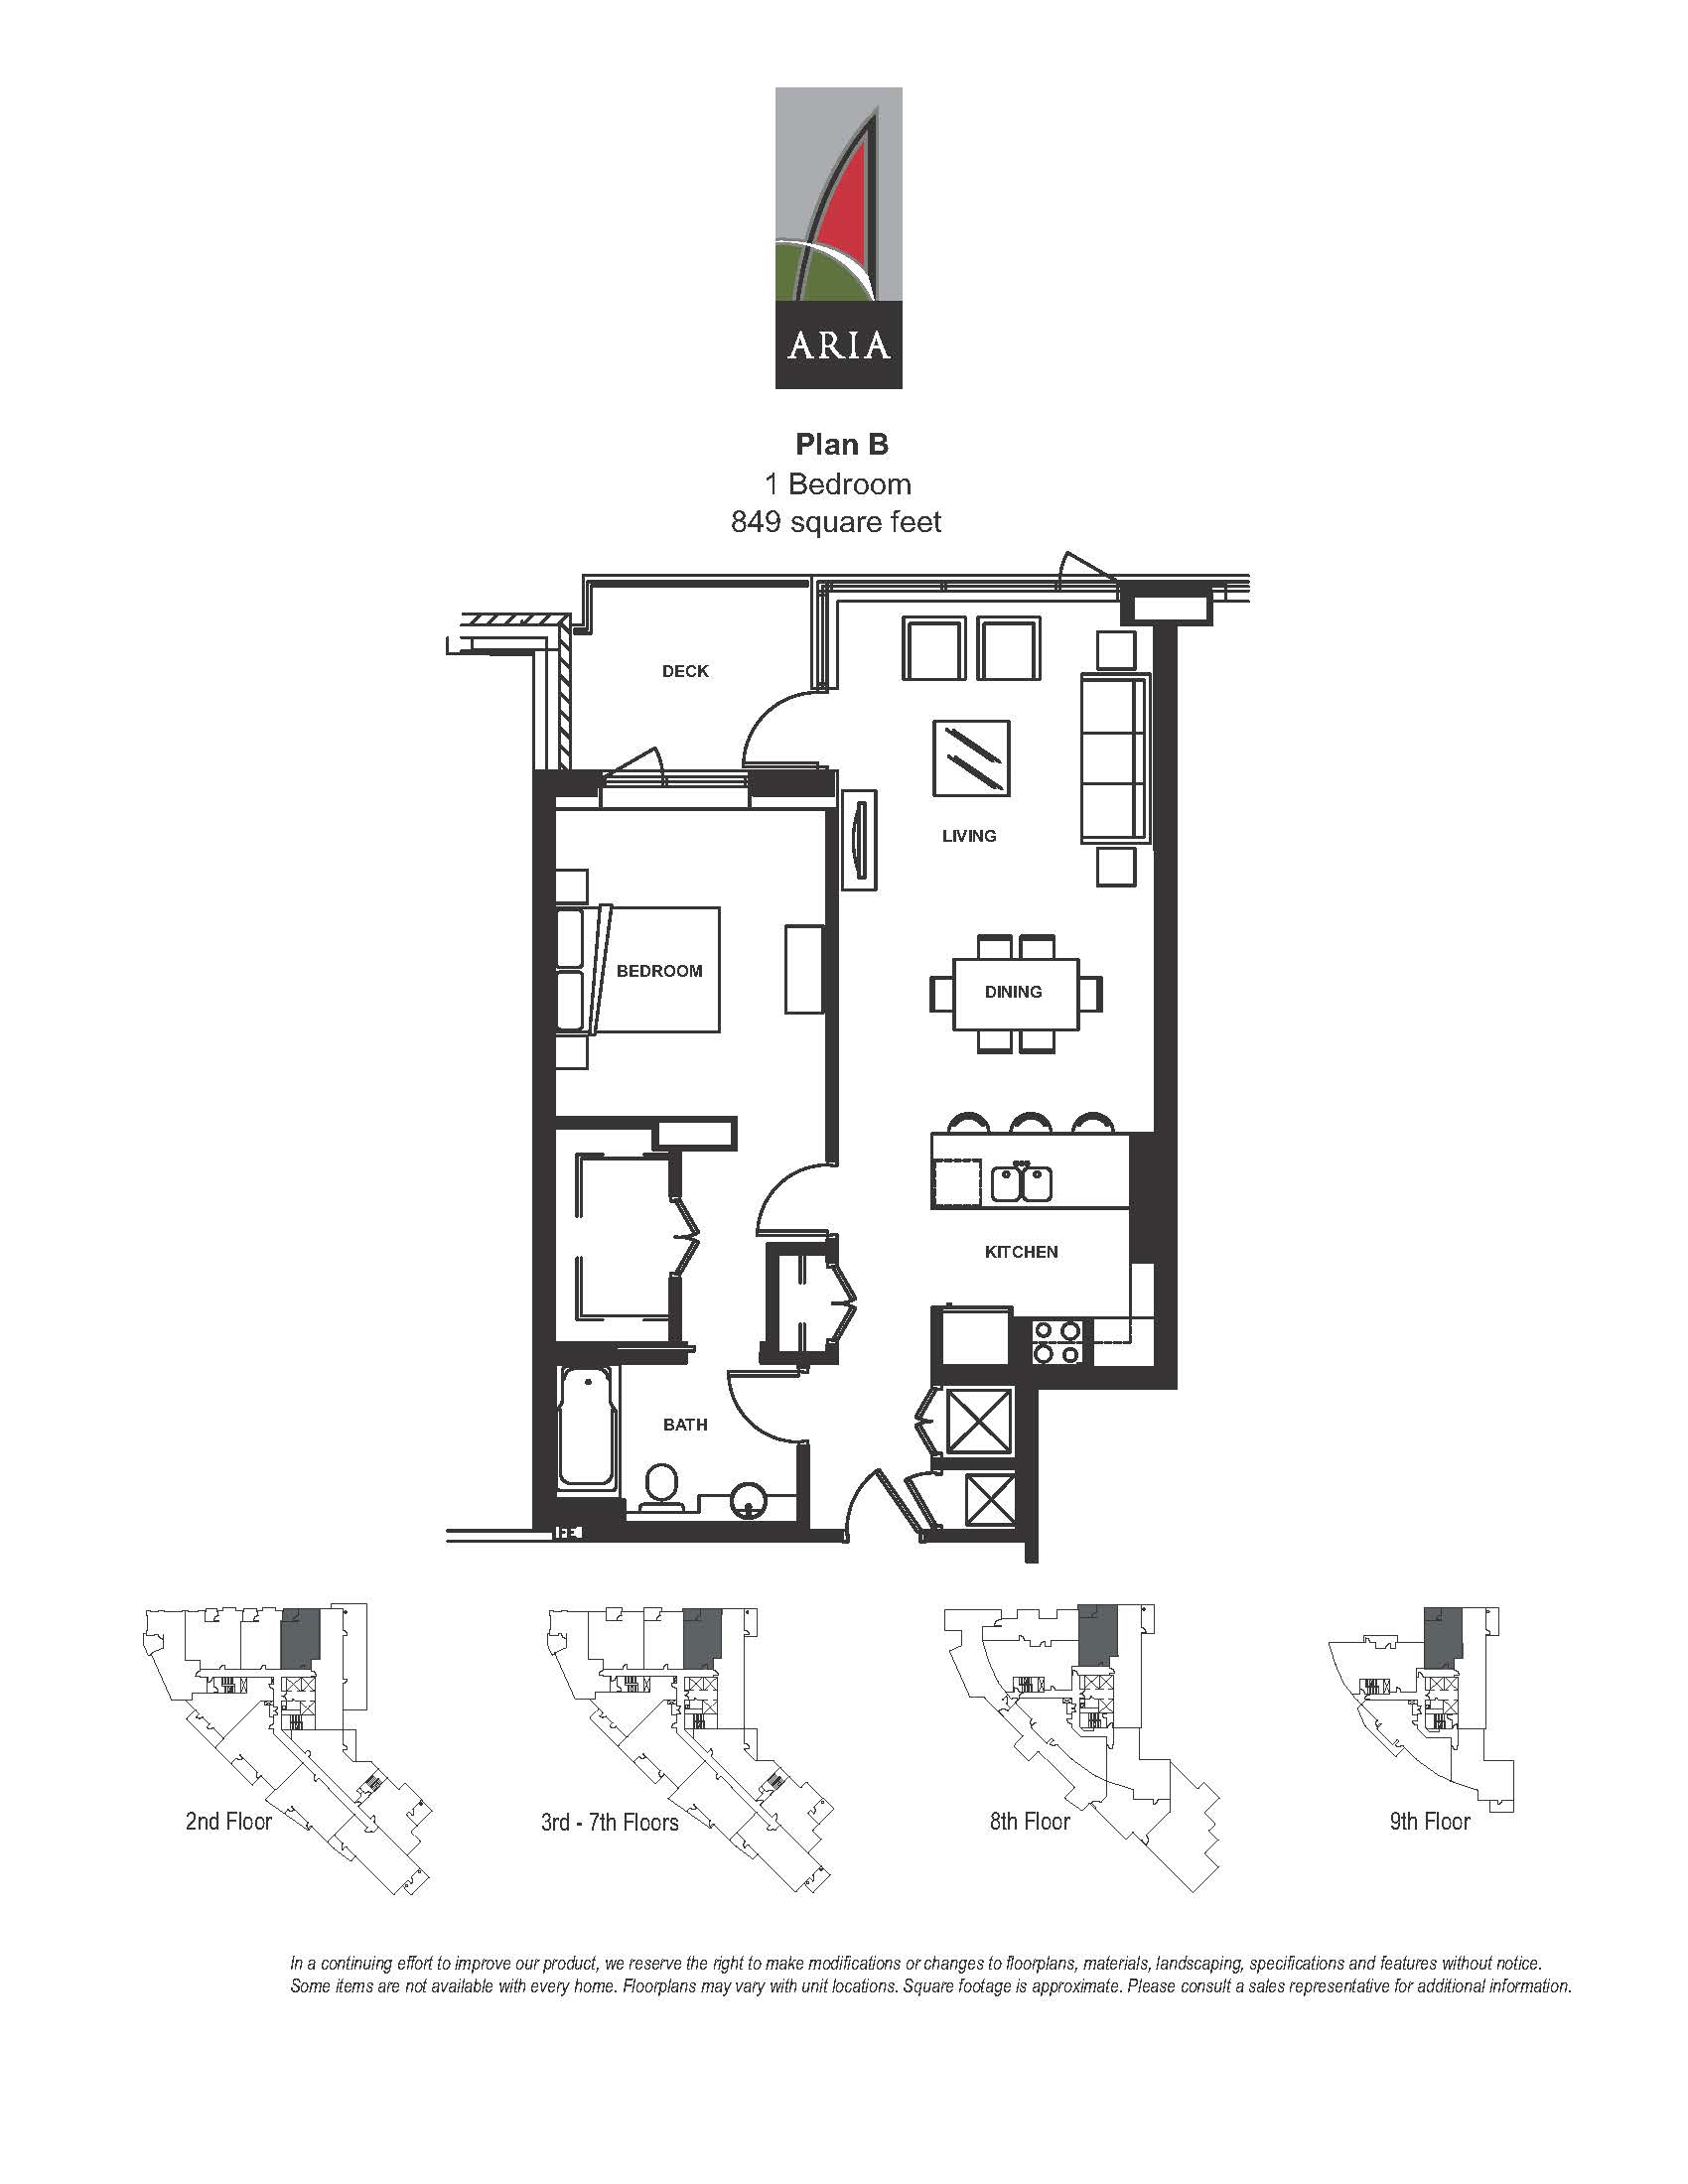 Aria condo floor plans san diego ca - One bedroom condos for sale in san diego ...